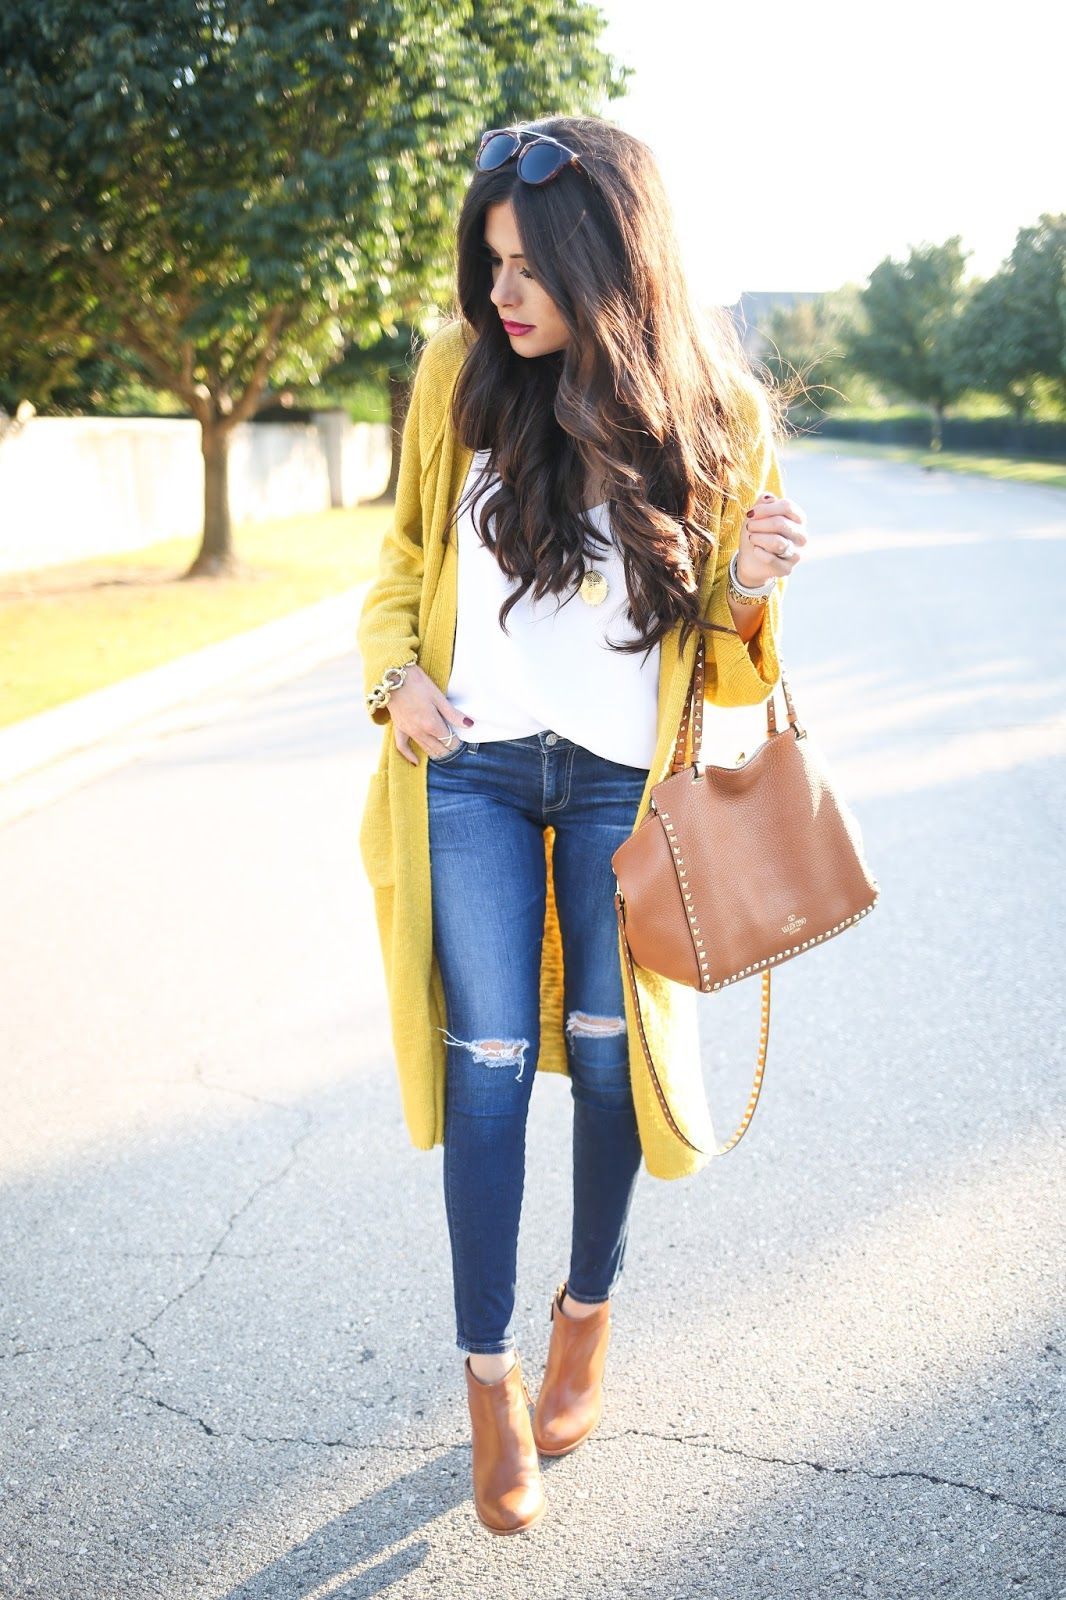 ed7cb22a6c3d The Sweetest Thing   Fall outfits   Pinterest   Гардероб, Базовый ...